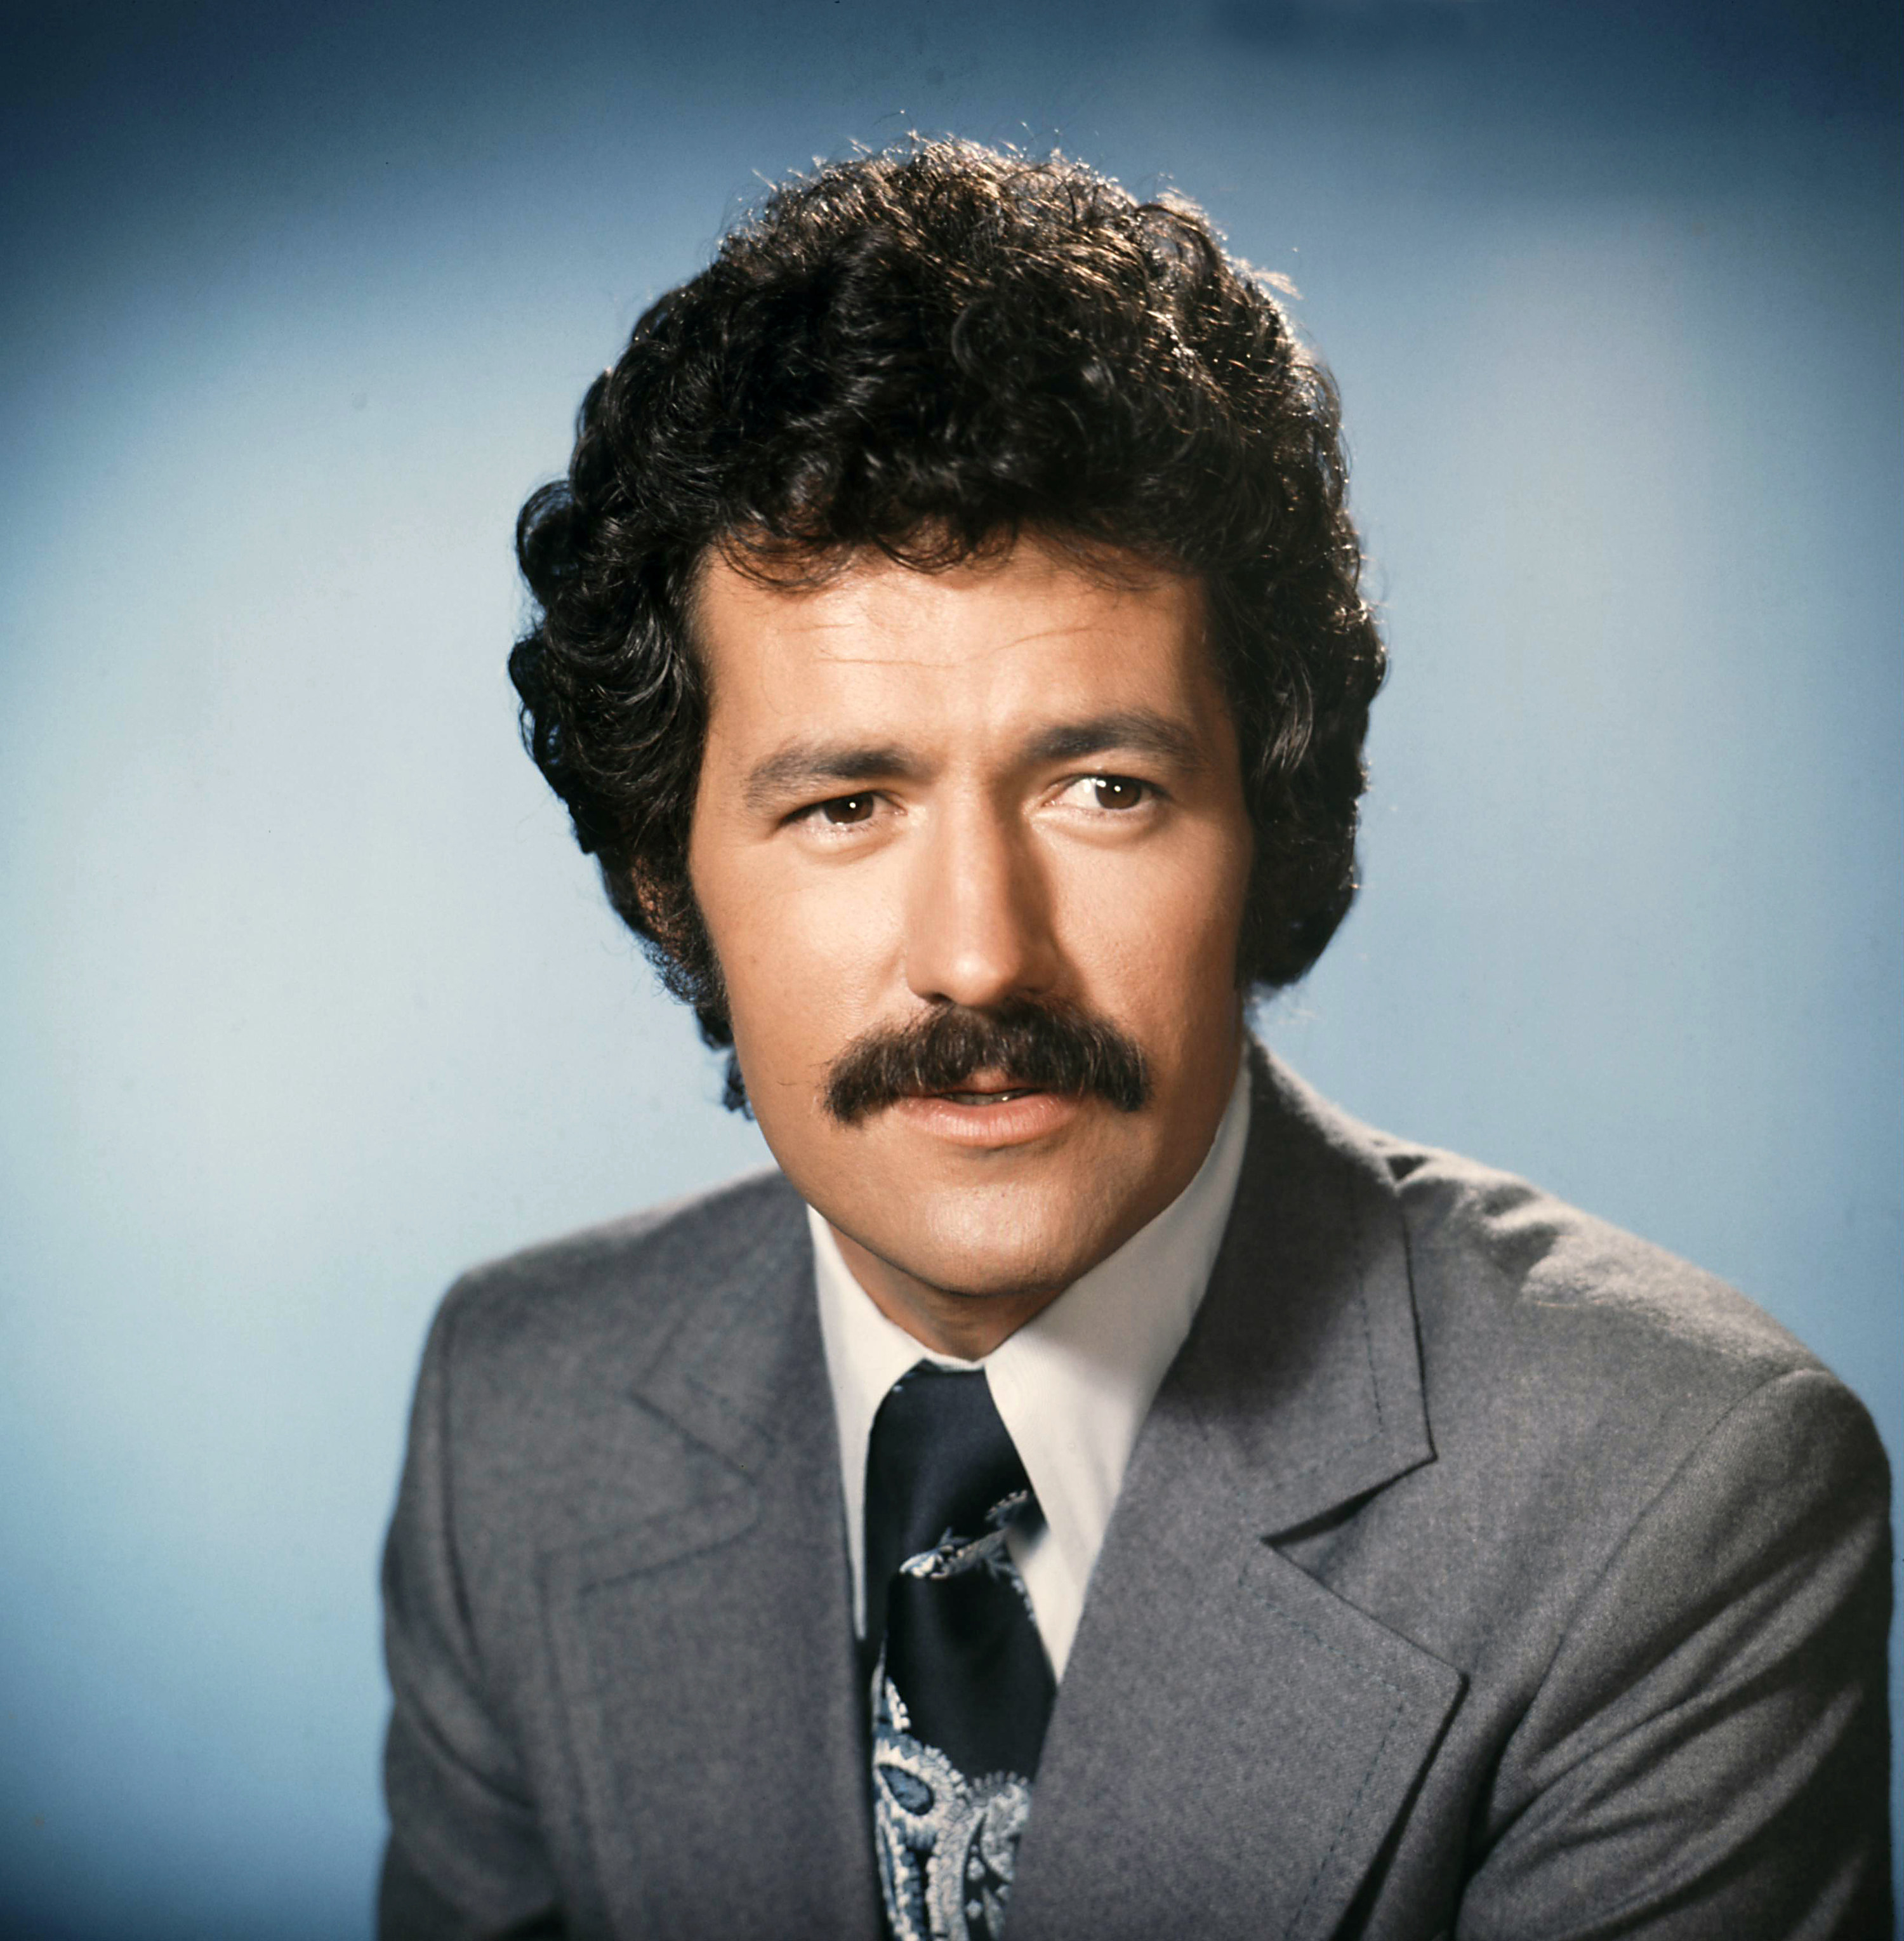 Trebek on blue background looking off to side of the camera